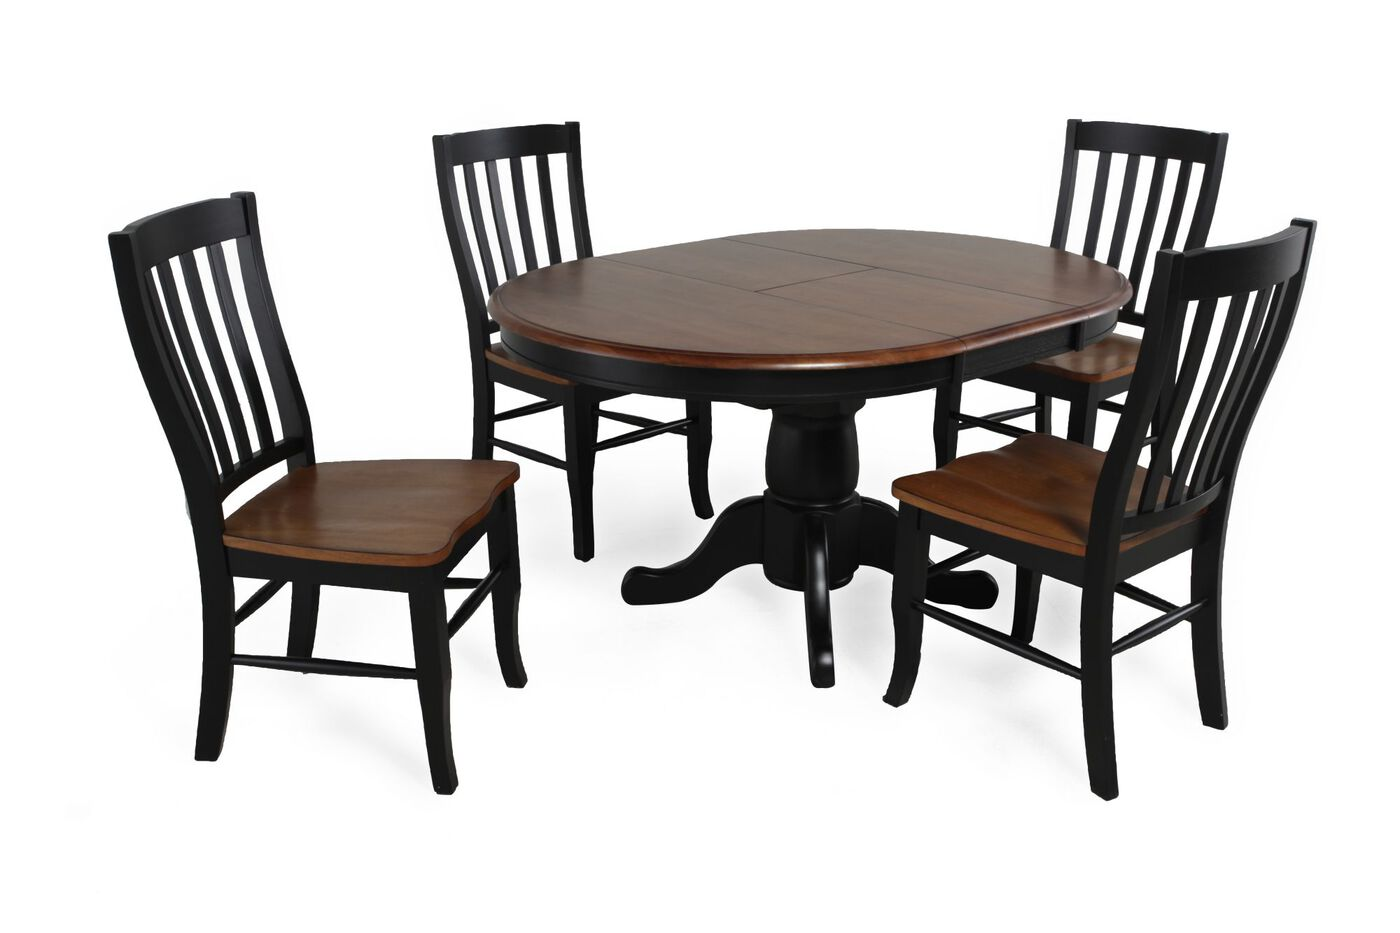 100 Mathis Brothers Ontario Ca Patio Furniture